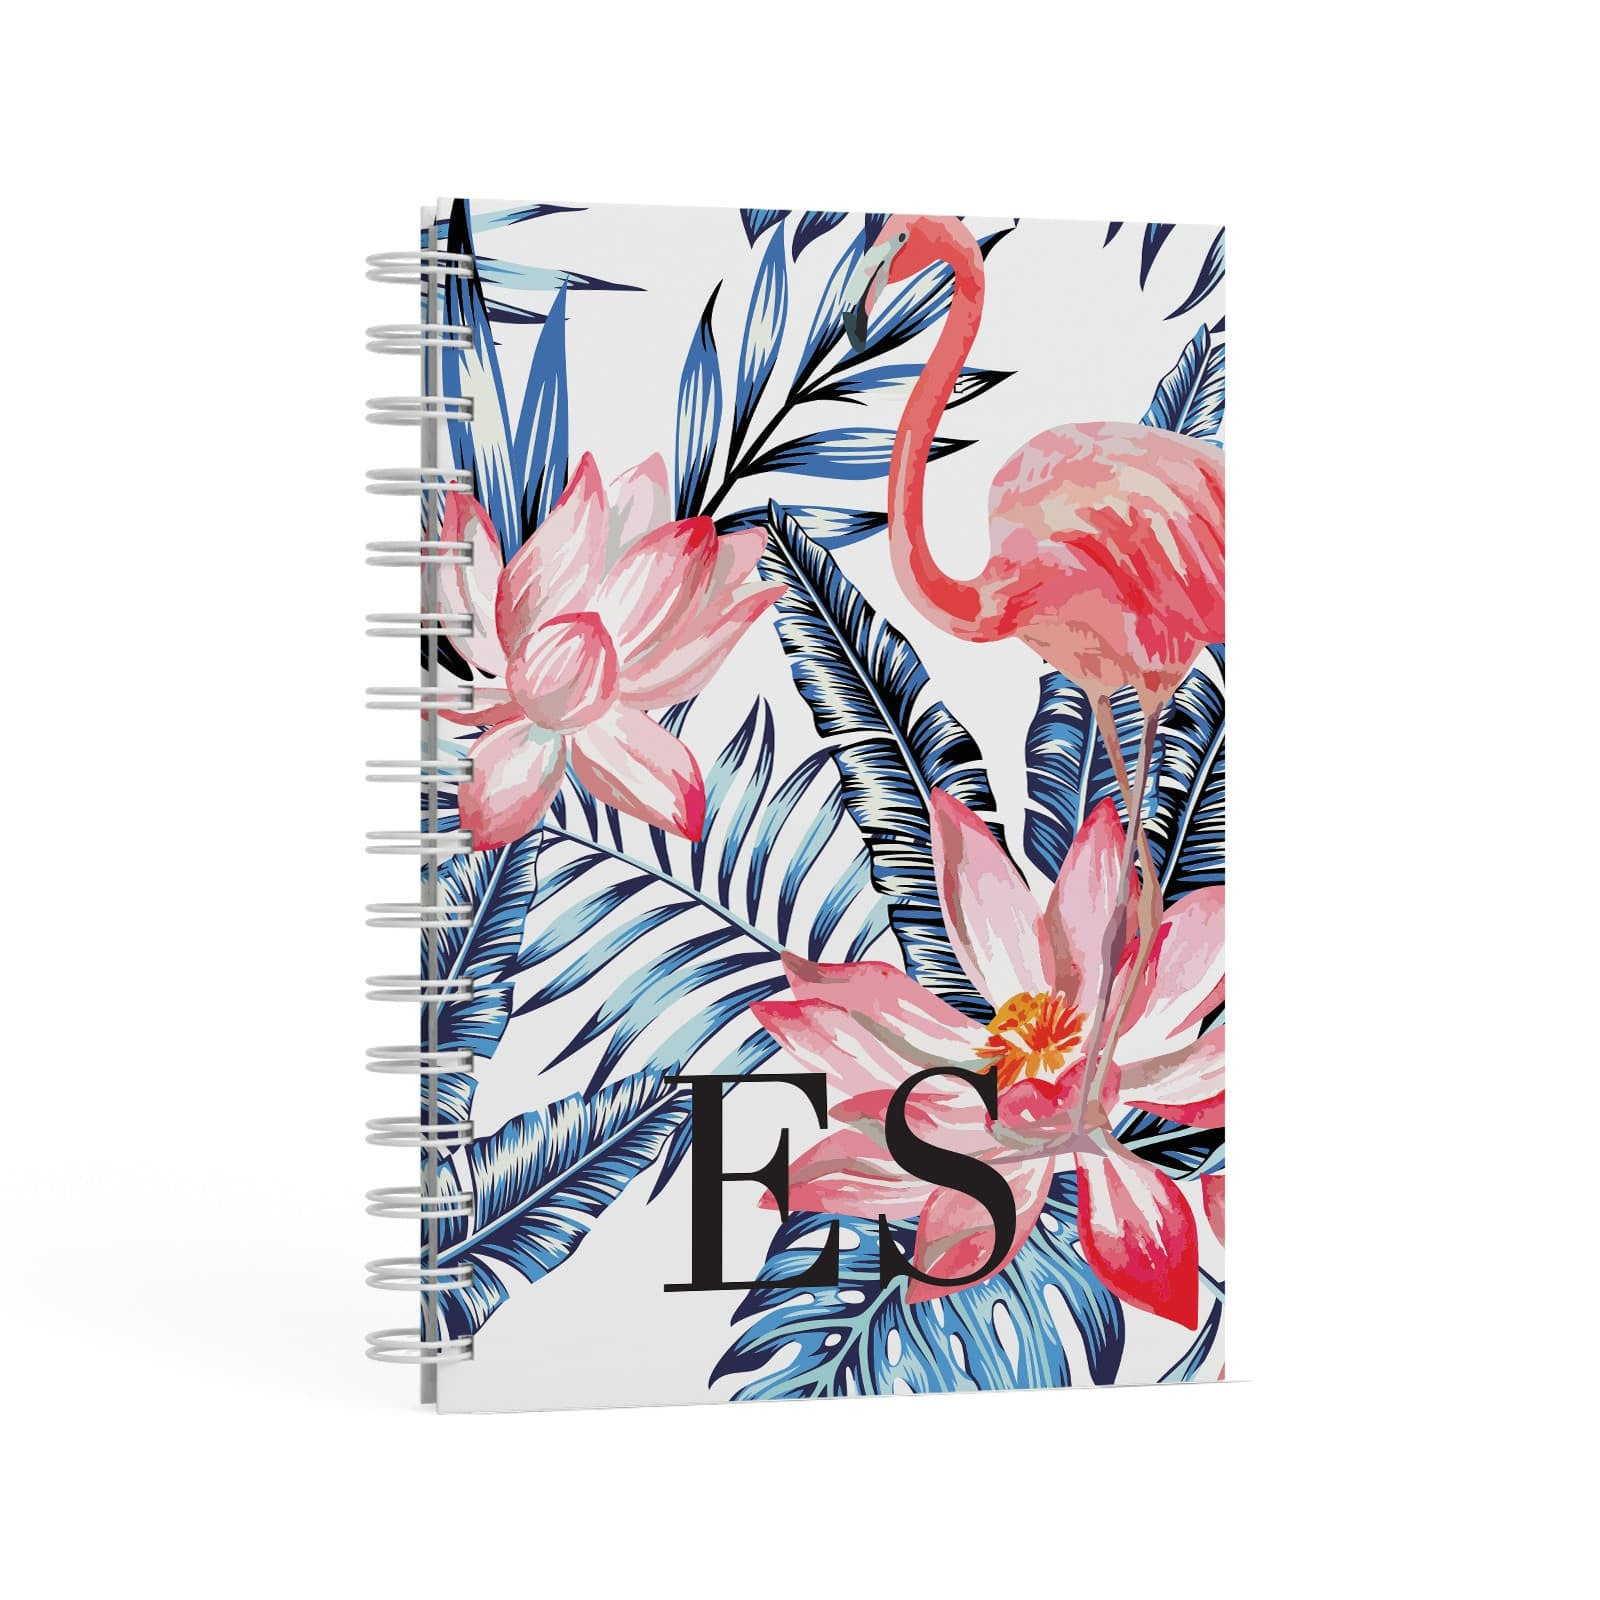 Blue Leaves & Pink Flamingos A5 Hardcover Notebook Second Side View